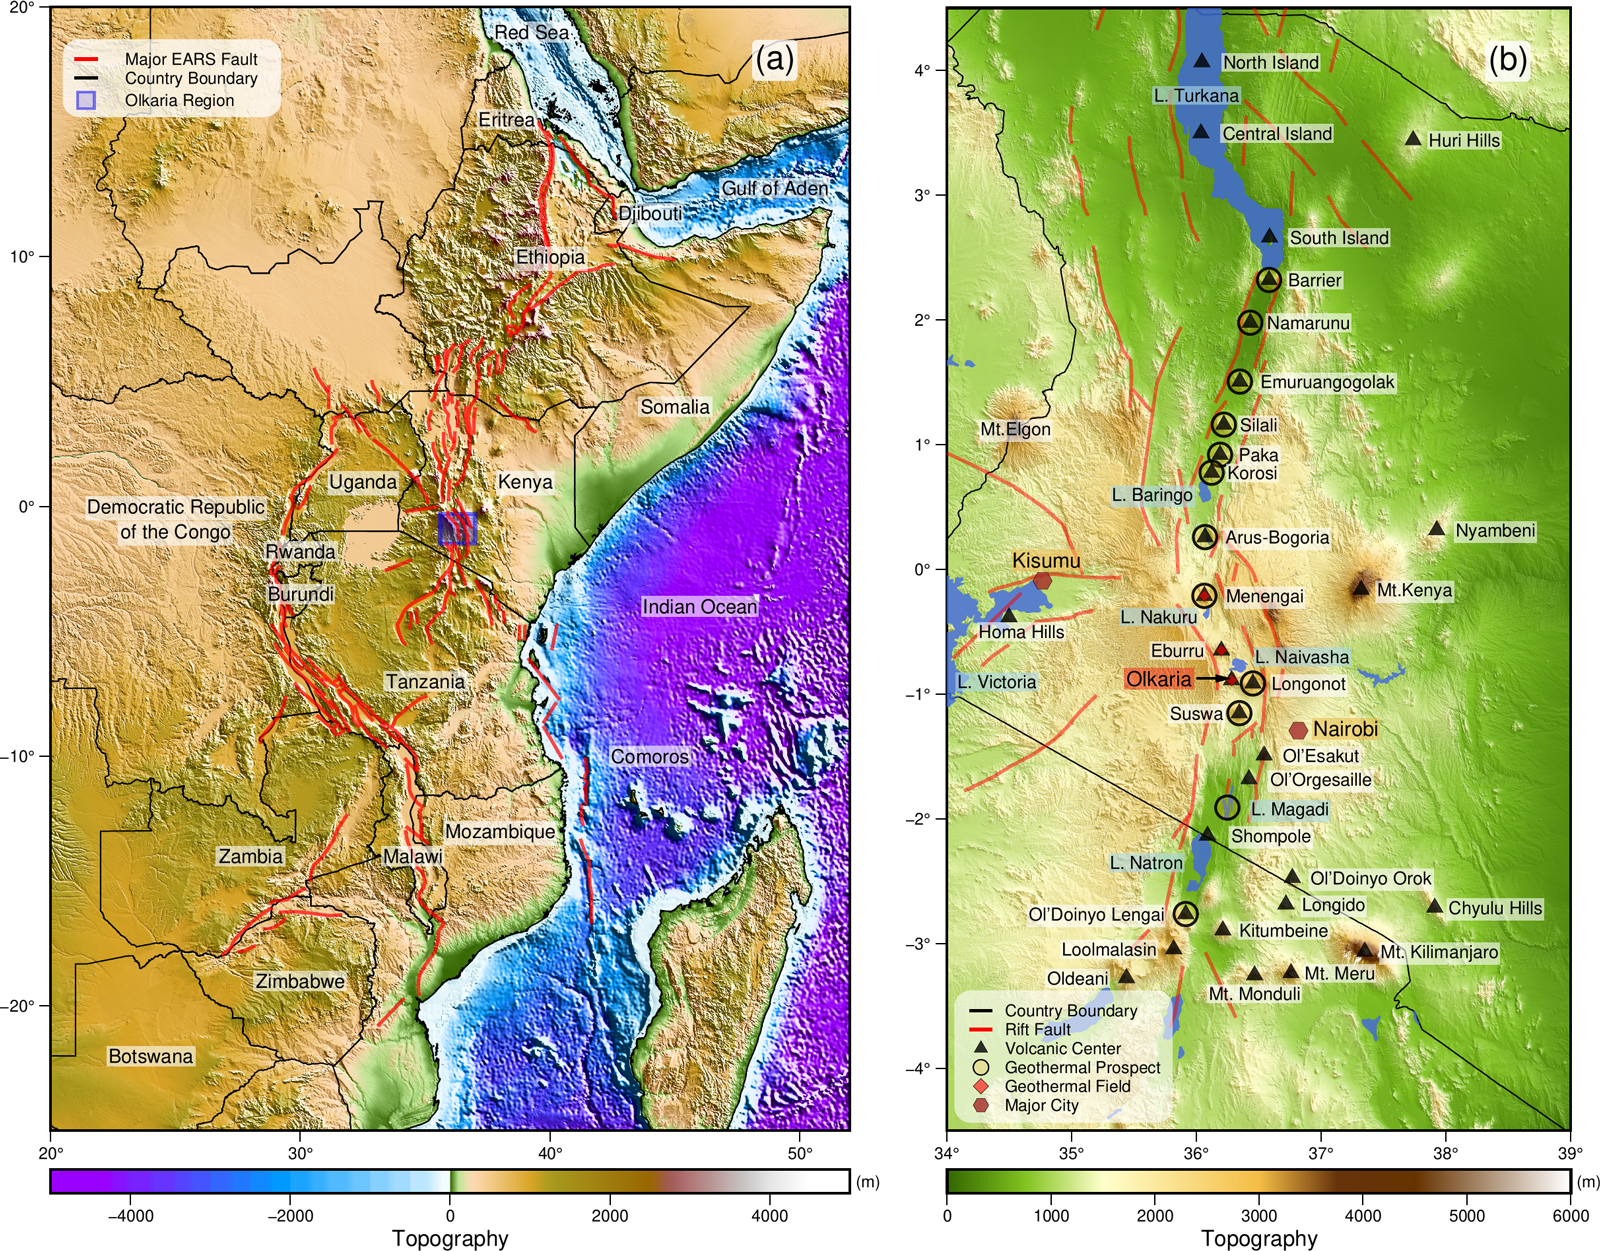 Maps of regional topography around the East African Rift System and Olkaria geothermal field